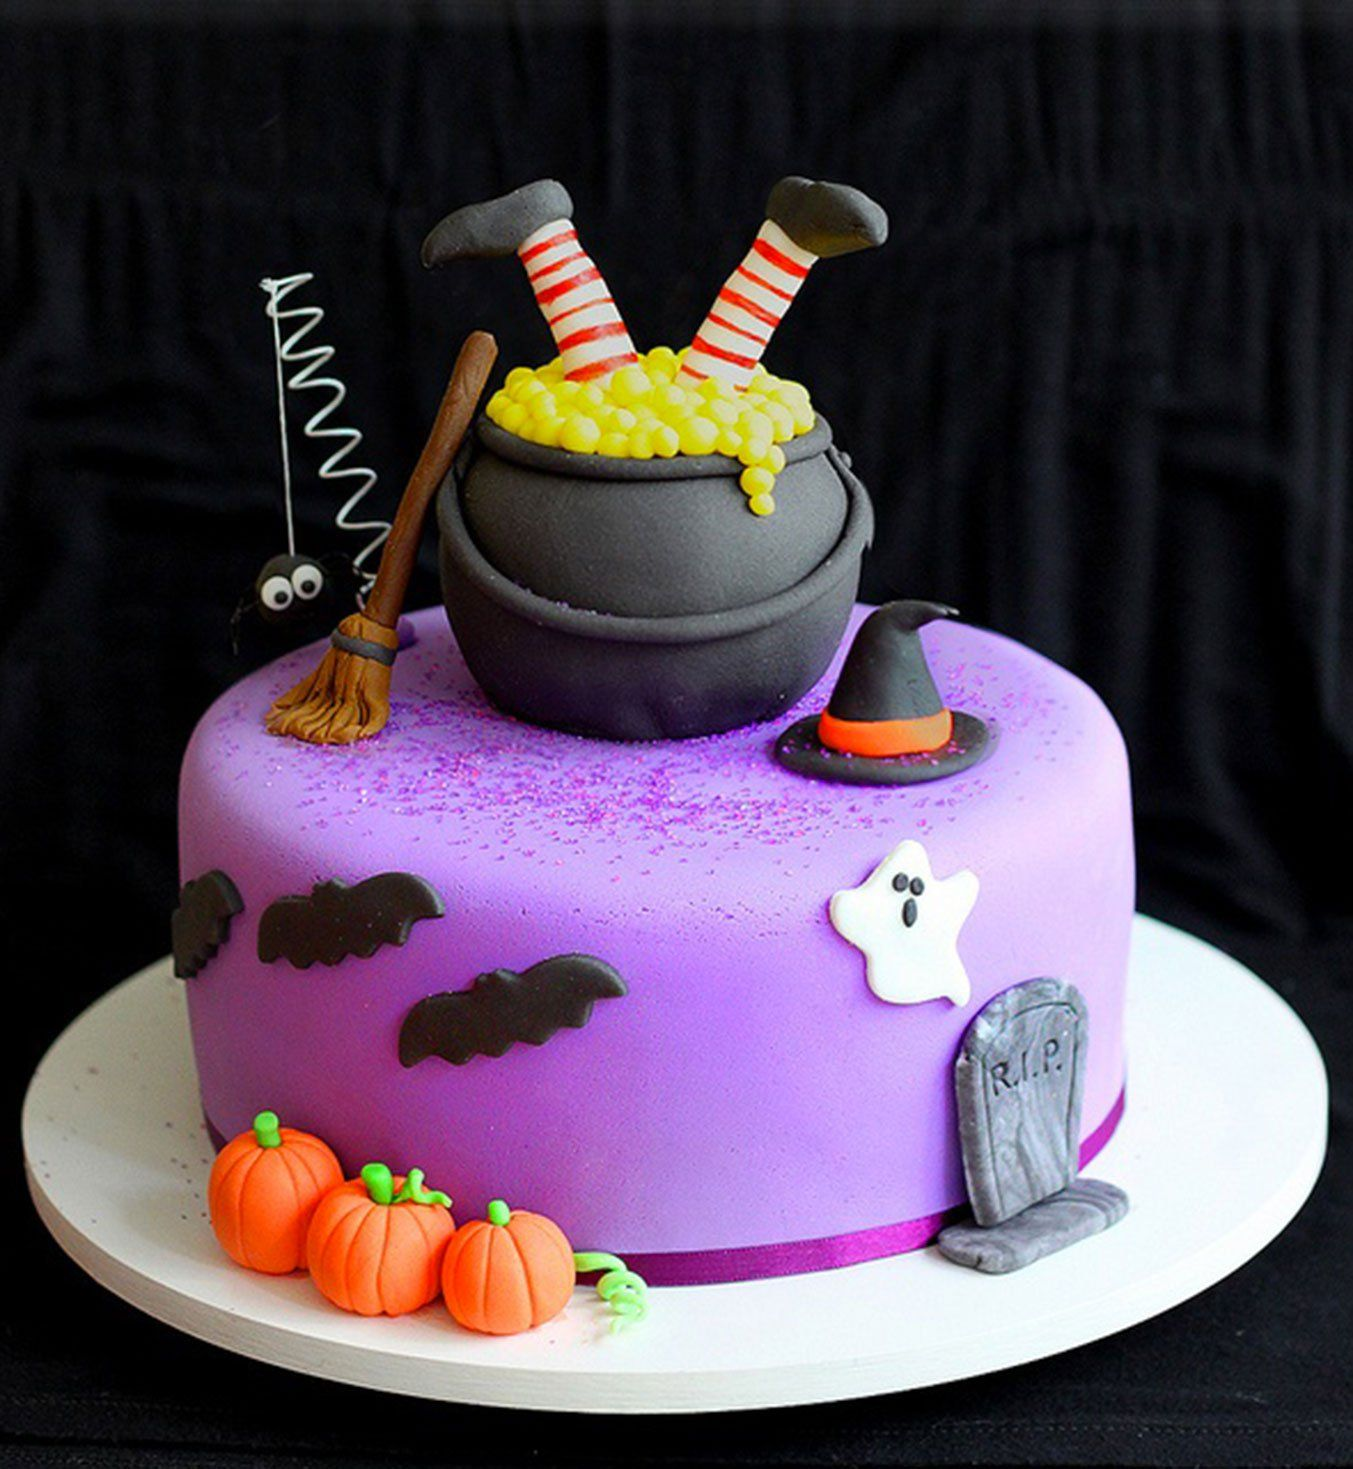 Les 36 plus beaux cakes d\u0027Halloween Halloween 2017, Halloween - Halloween Cake Decorating Ideas